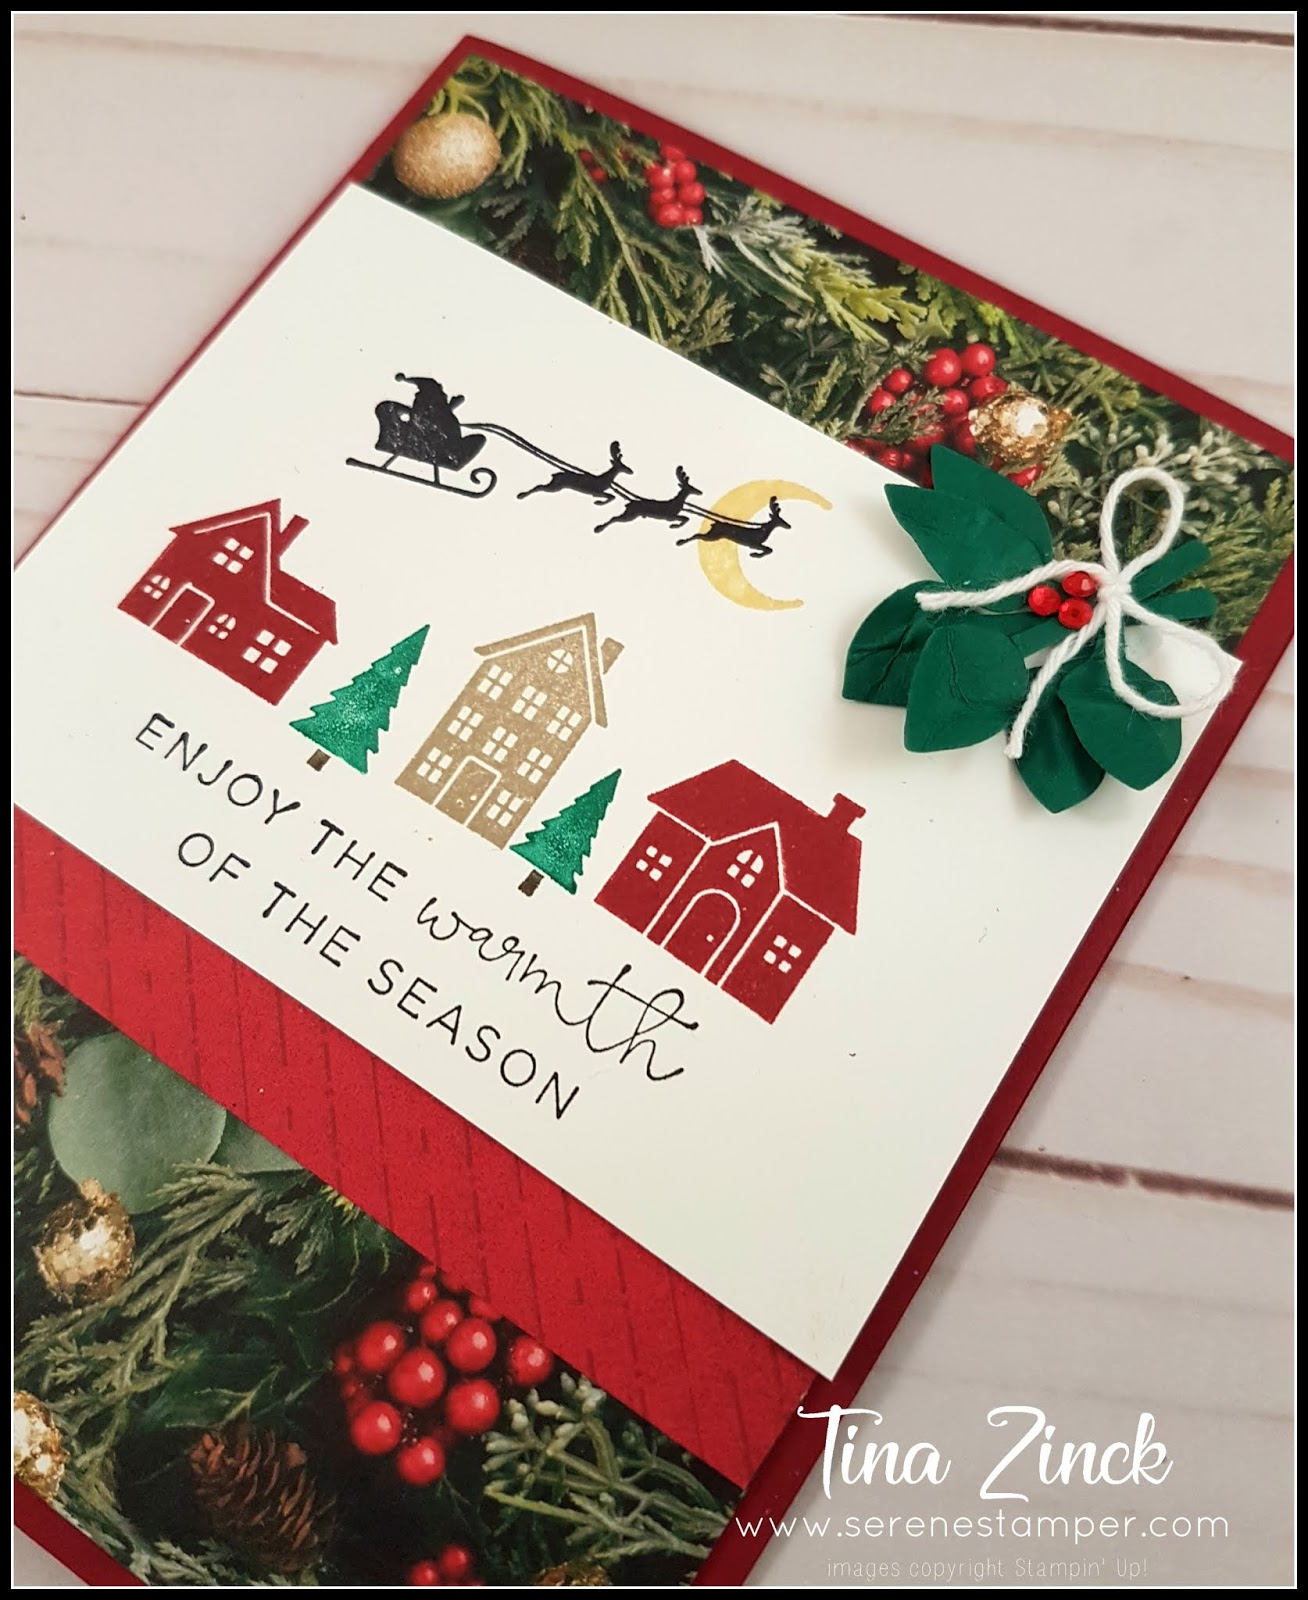 The Serene Stamper: Hearts Come Home Christmas Card